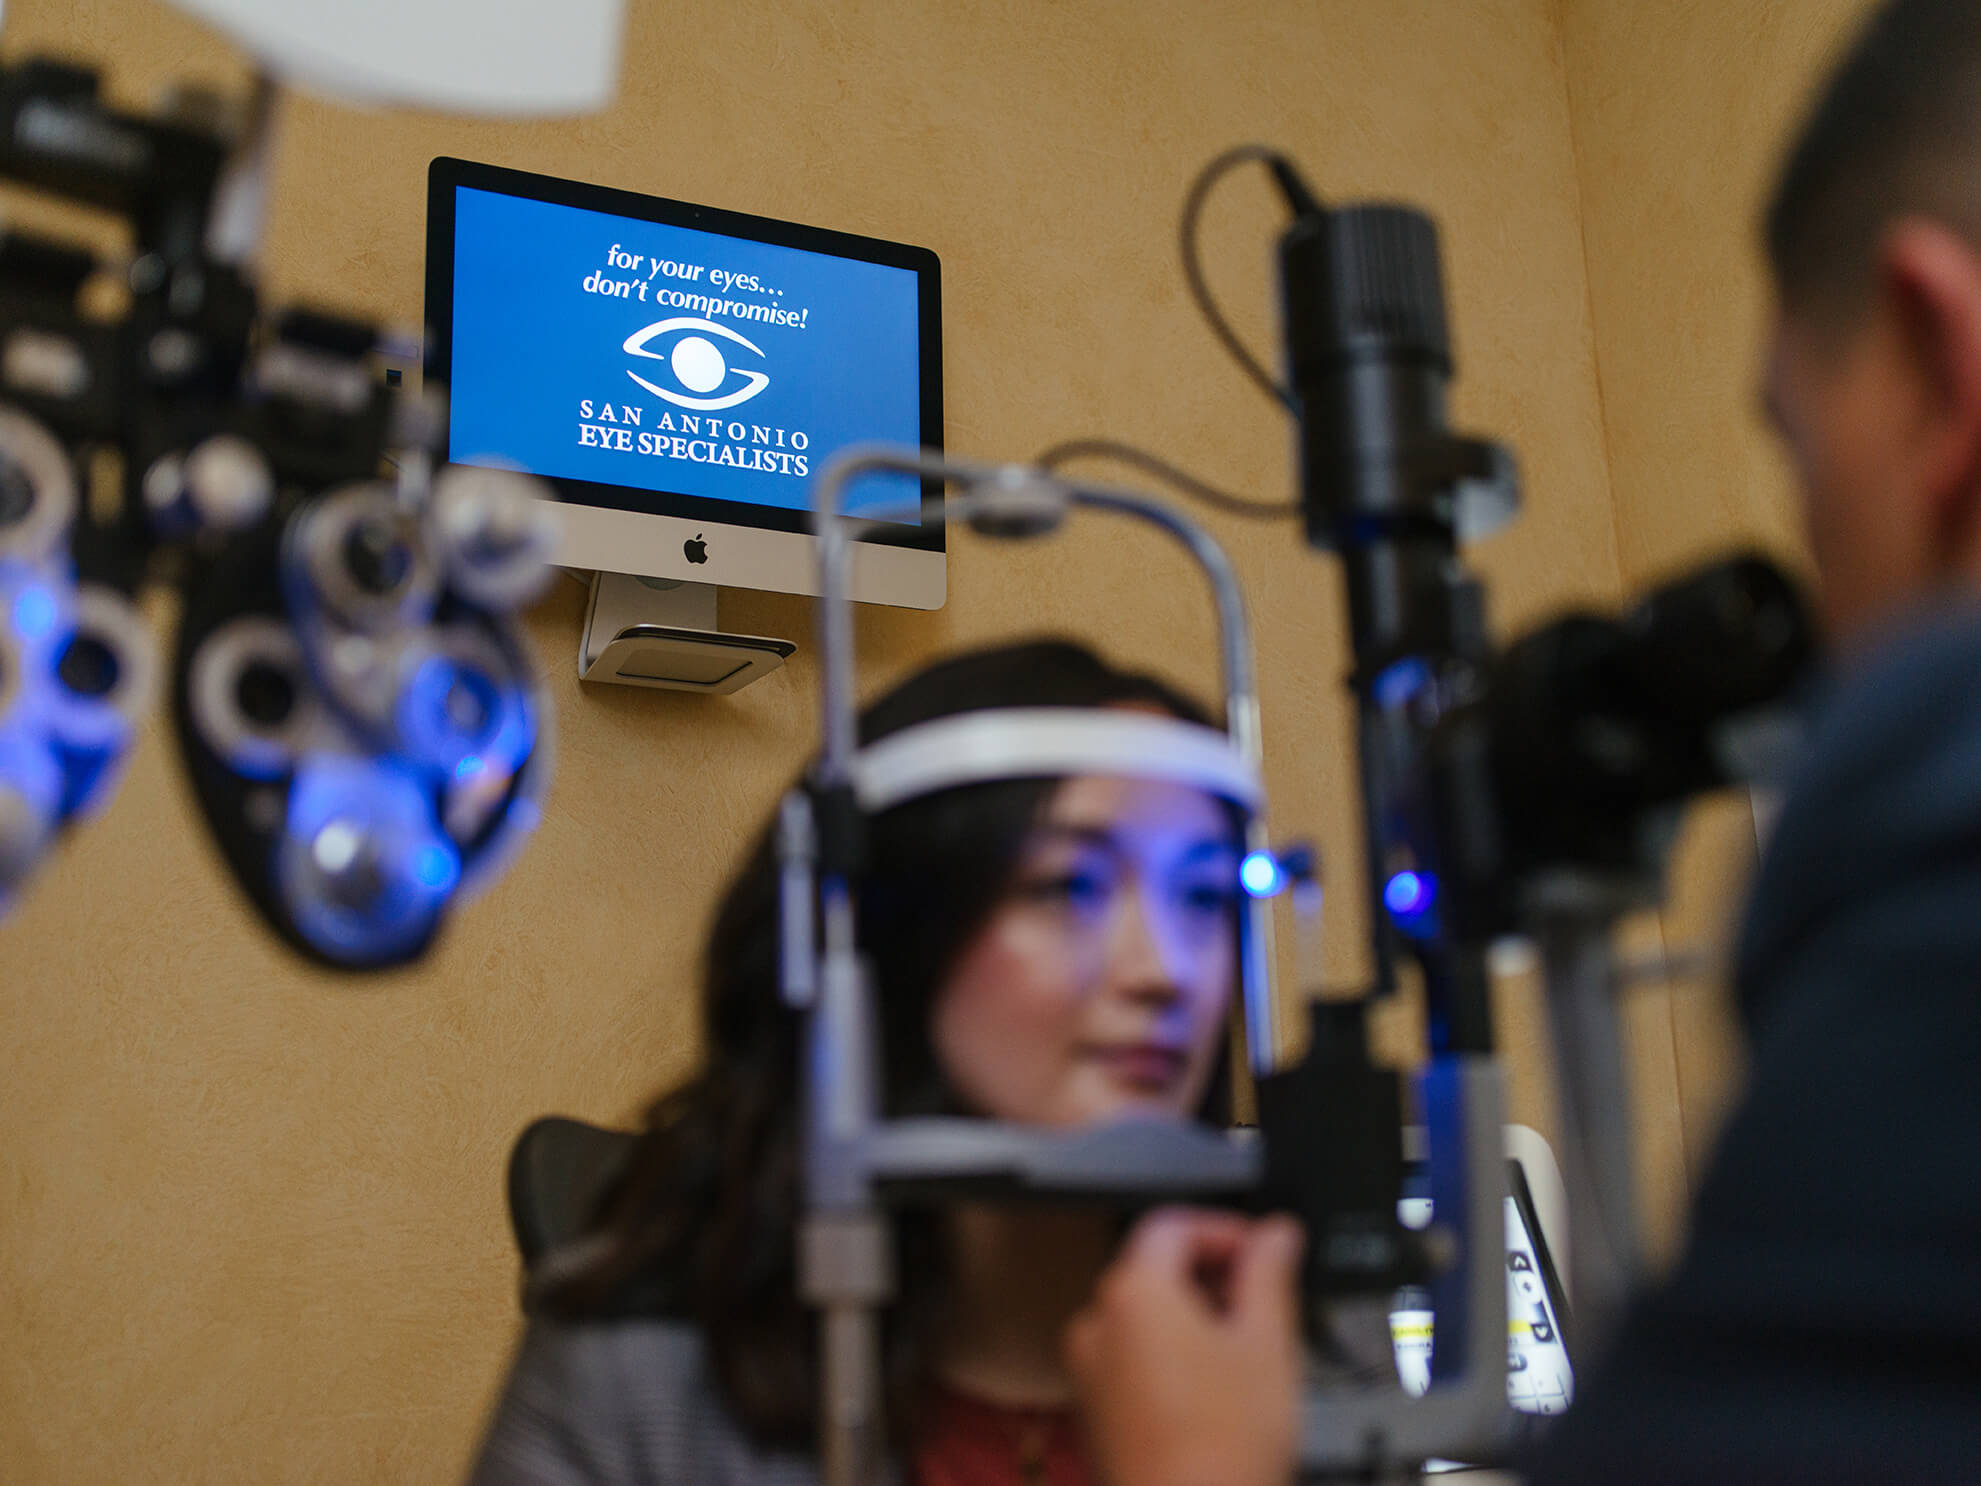 Woman having her eyes examined at San Antonio Eye Specialists